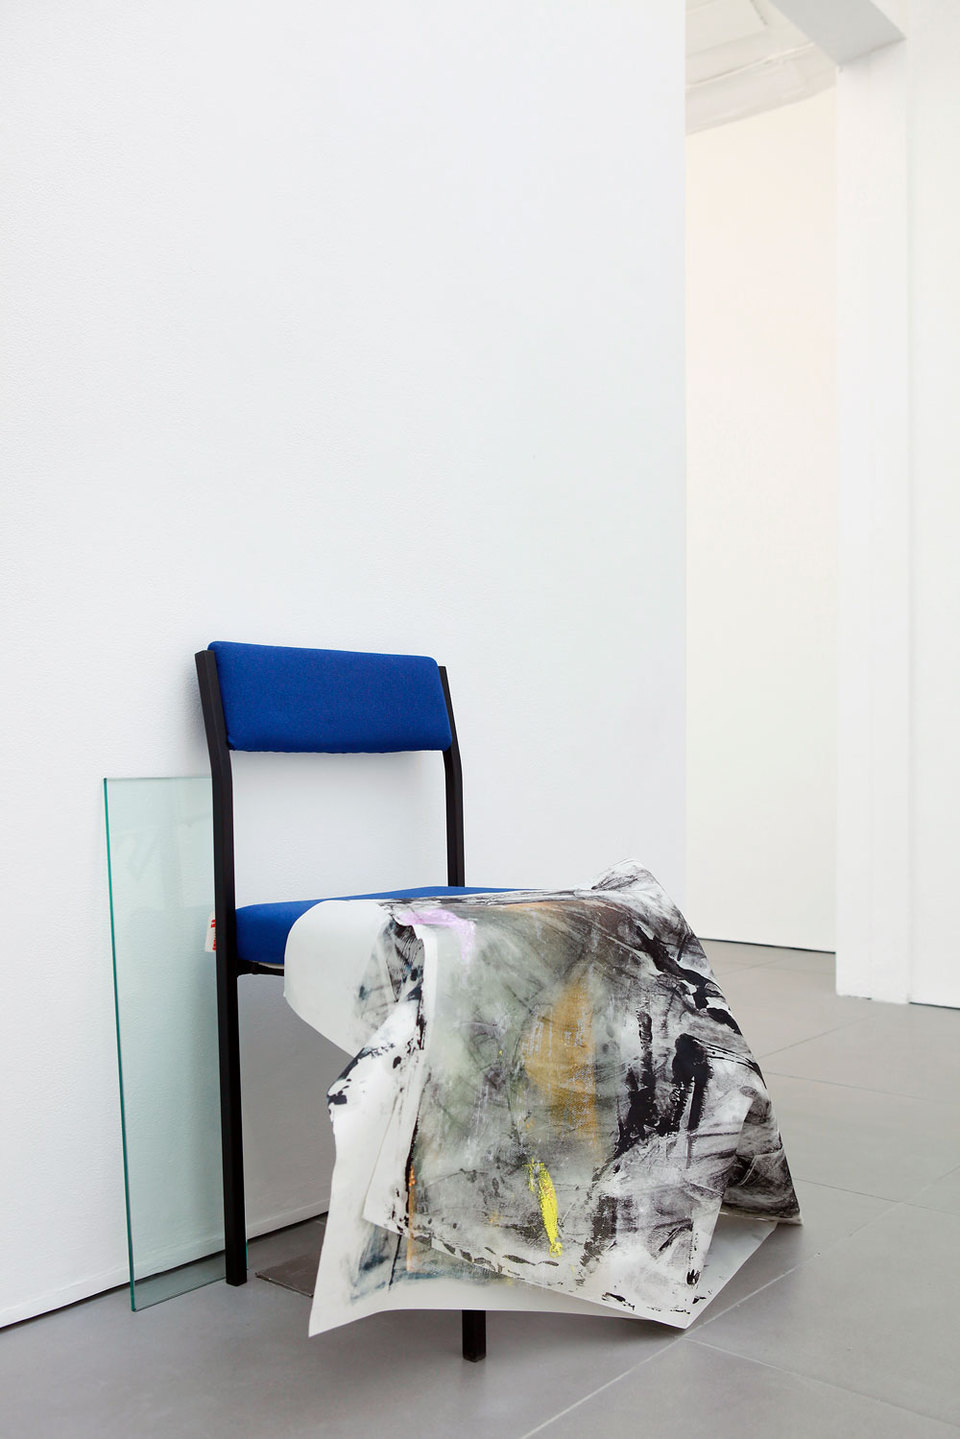 Marianne Spurr, The blue of distance, 2013 (from the series Workstations), lino, metal, emergency blanket, waxed cotton, MDF, cable, oil paint on newsprint, wire, ceramic tiles, clay, ink on acetate, plastic tubing, string, acrylic paint mould, blind, cha